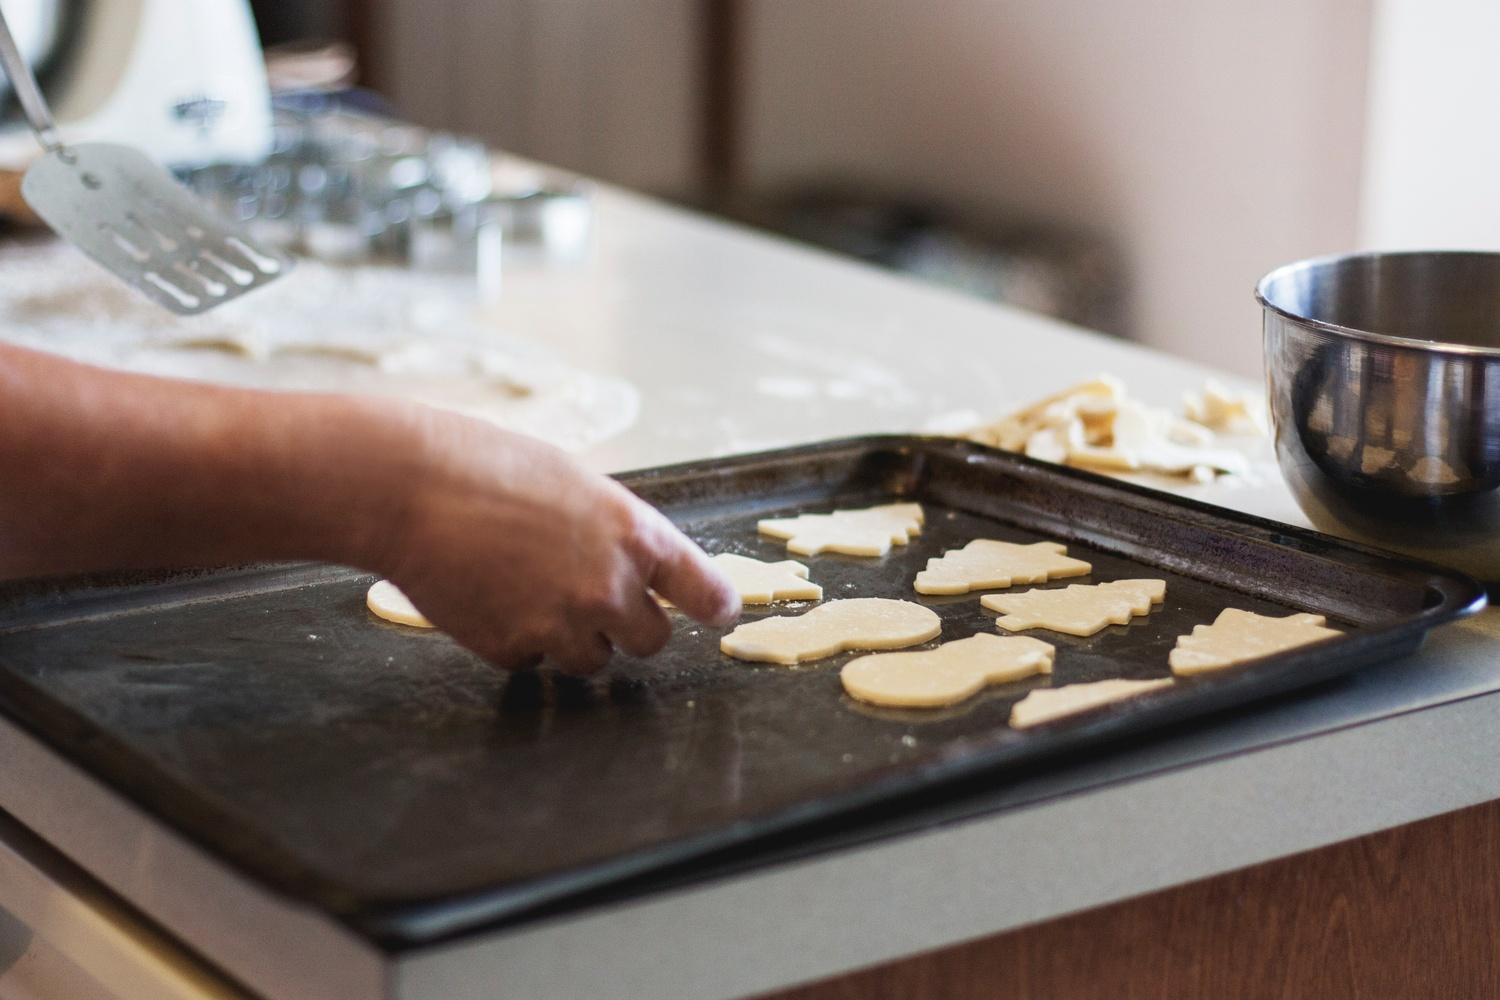 person lining assorted-shaped cookies on baking sheet inside kitchen - Möbel Preiss